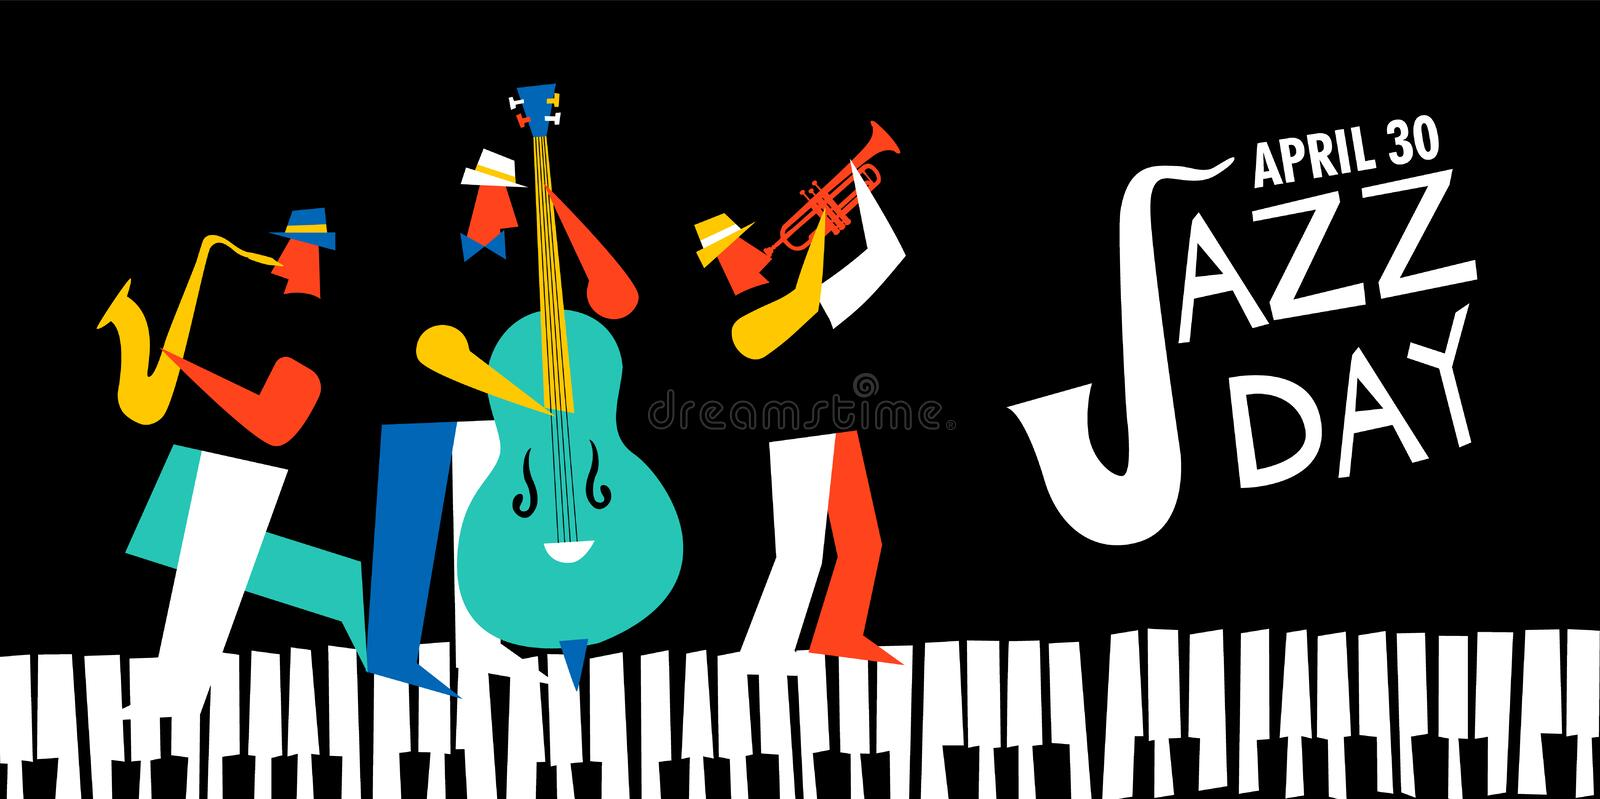 International Jazz day poster of live music band royalty free illustration